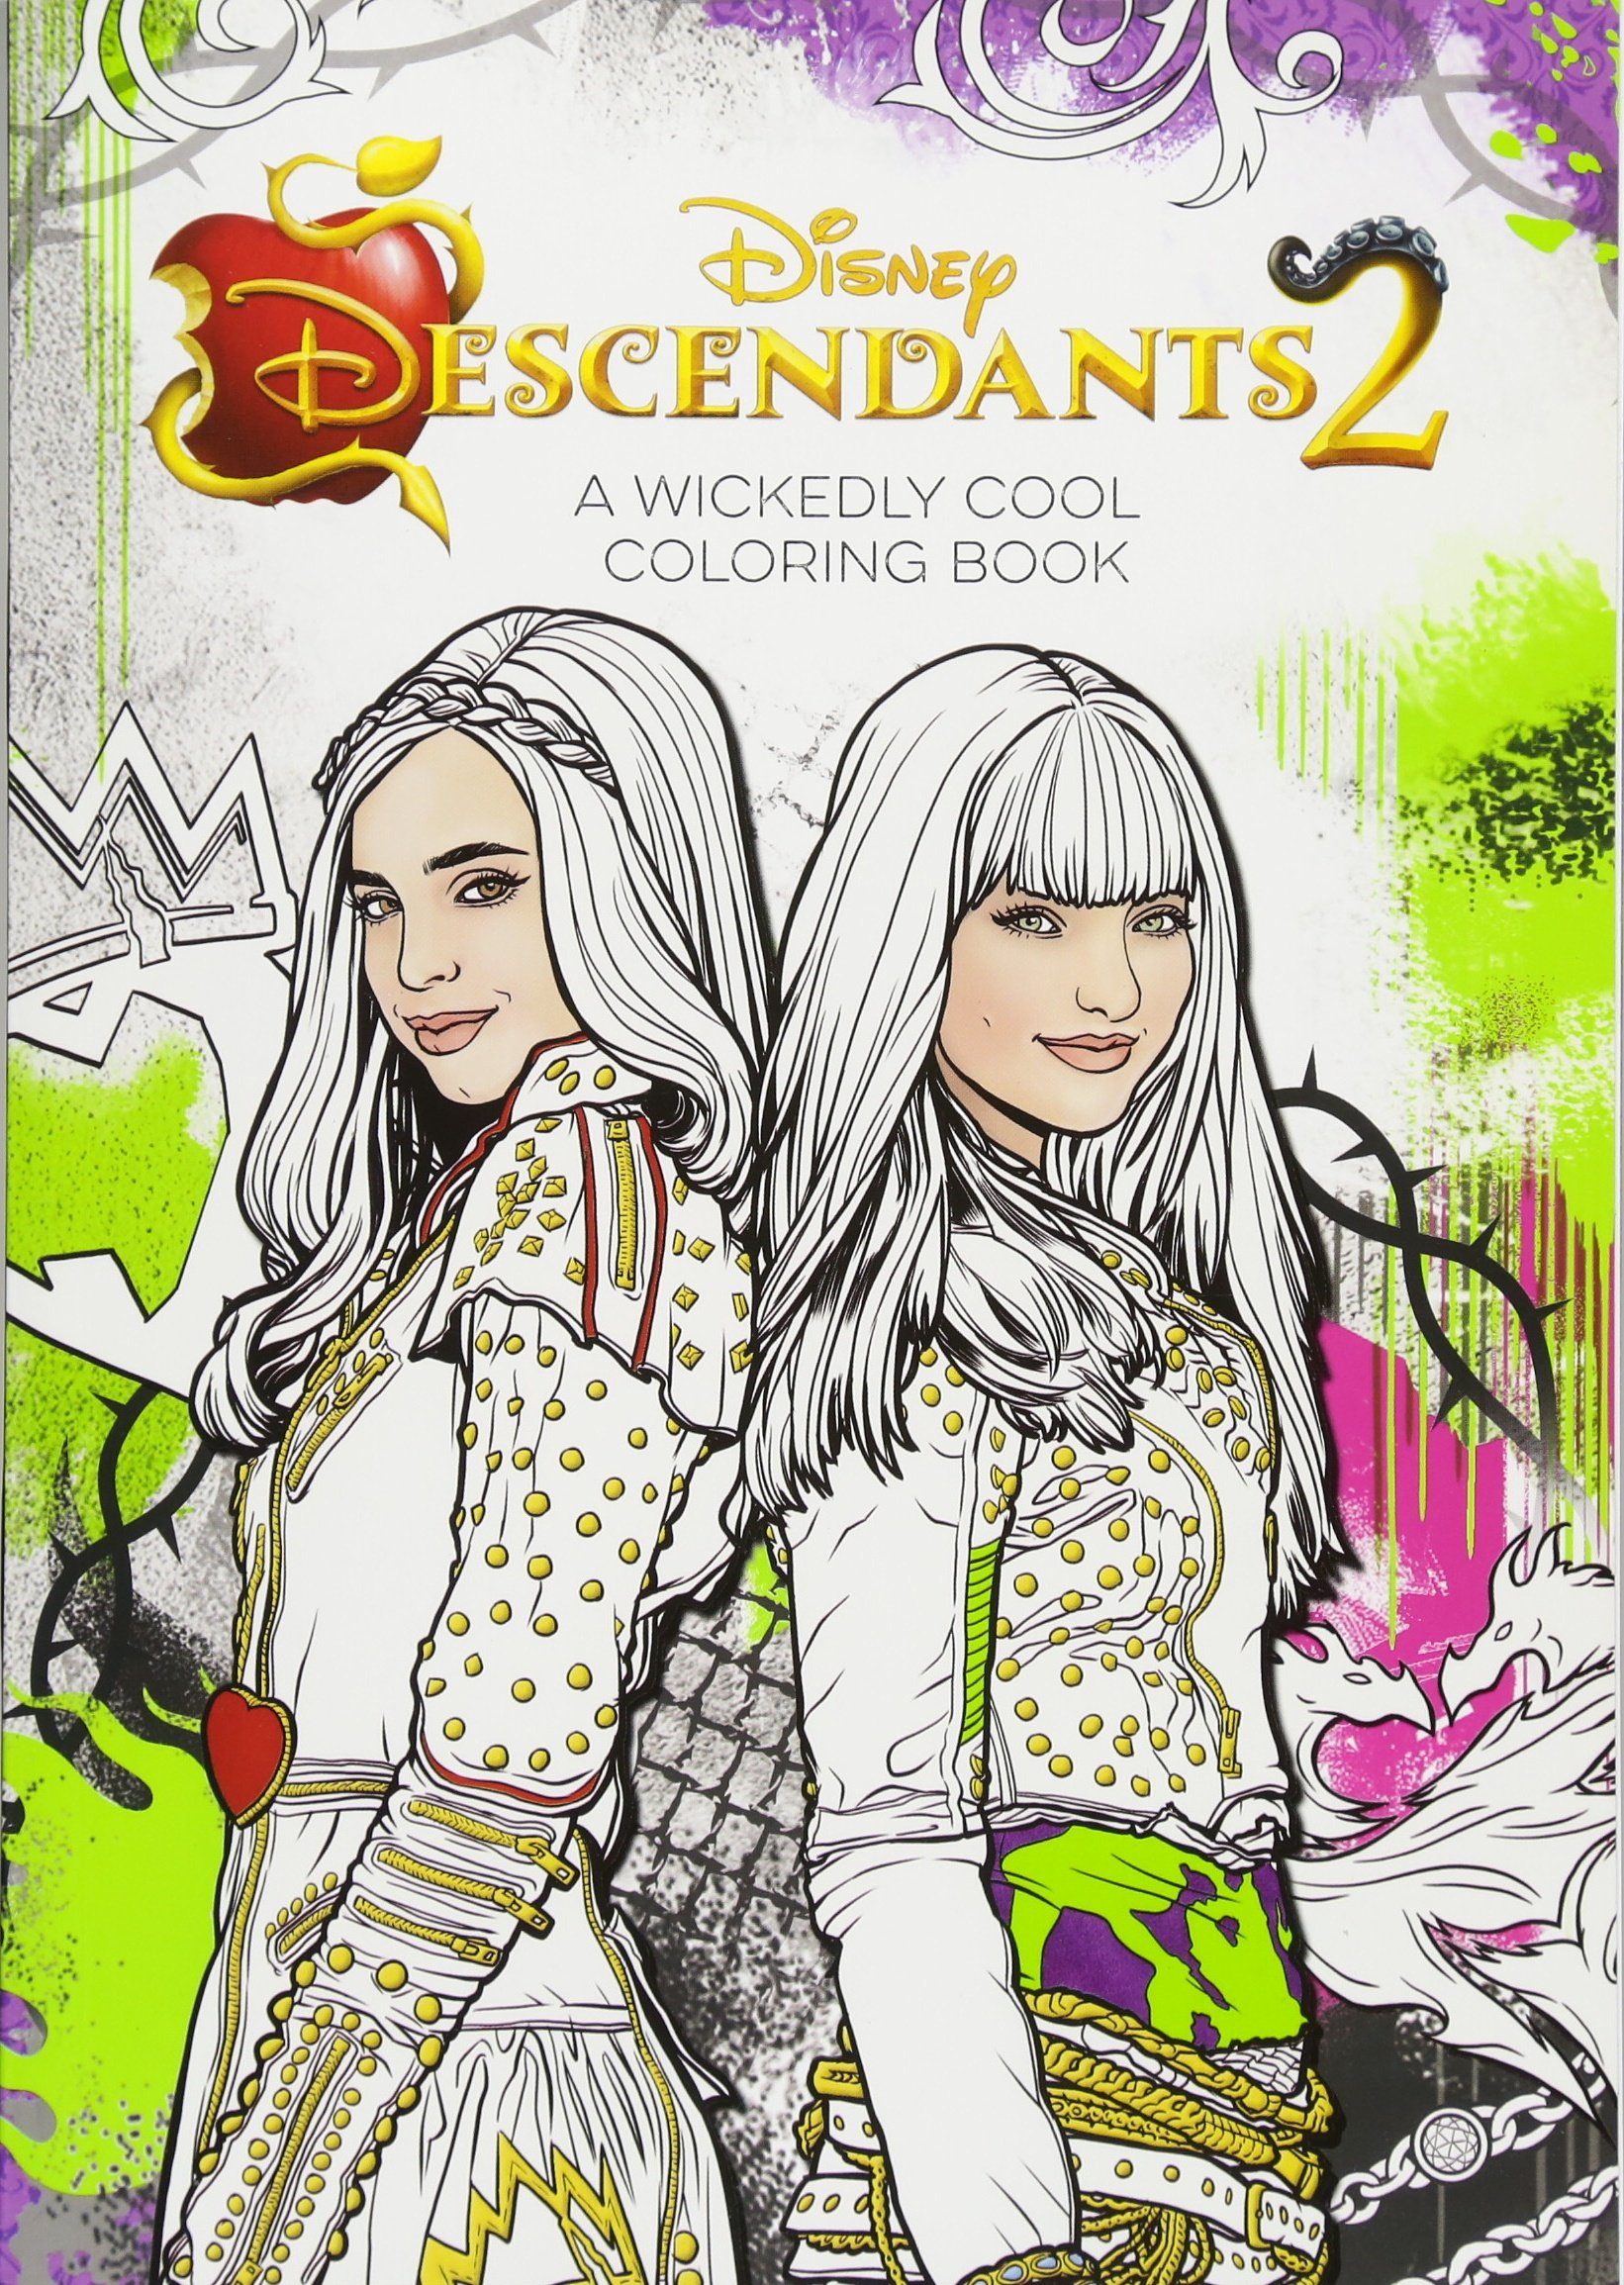 Amazoncom Descendants 2 A Wickedly Cool Coloring Book Art of